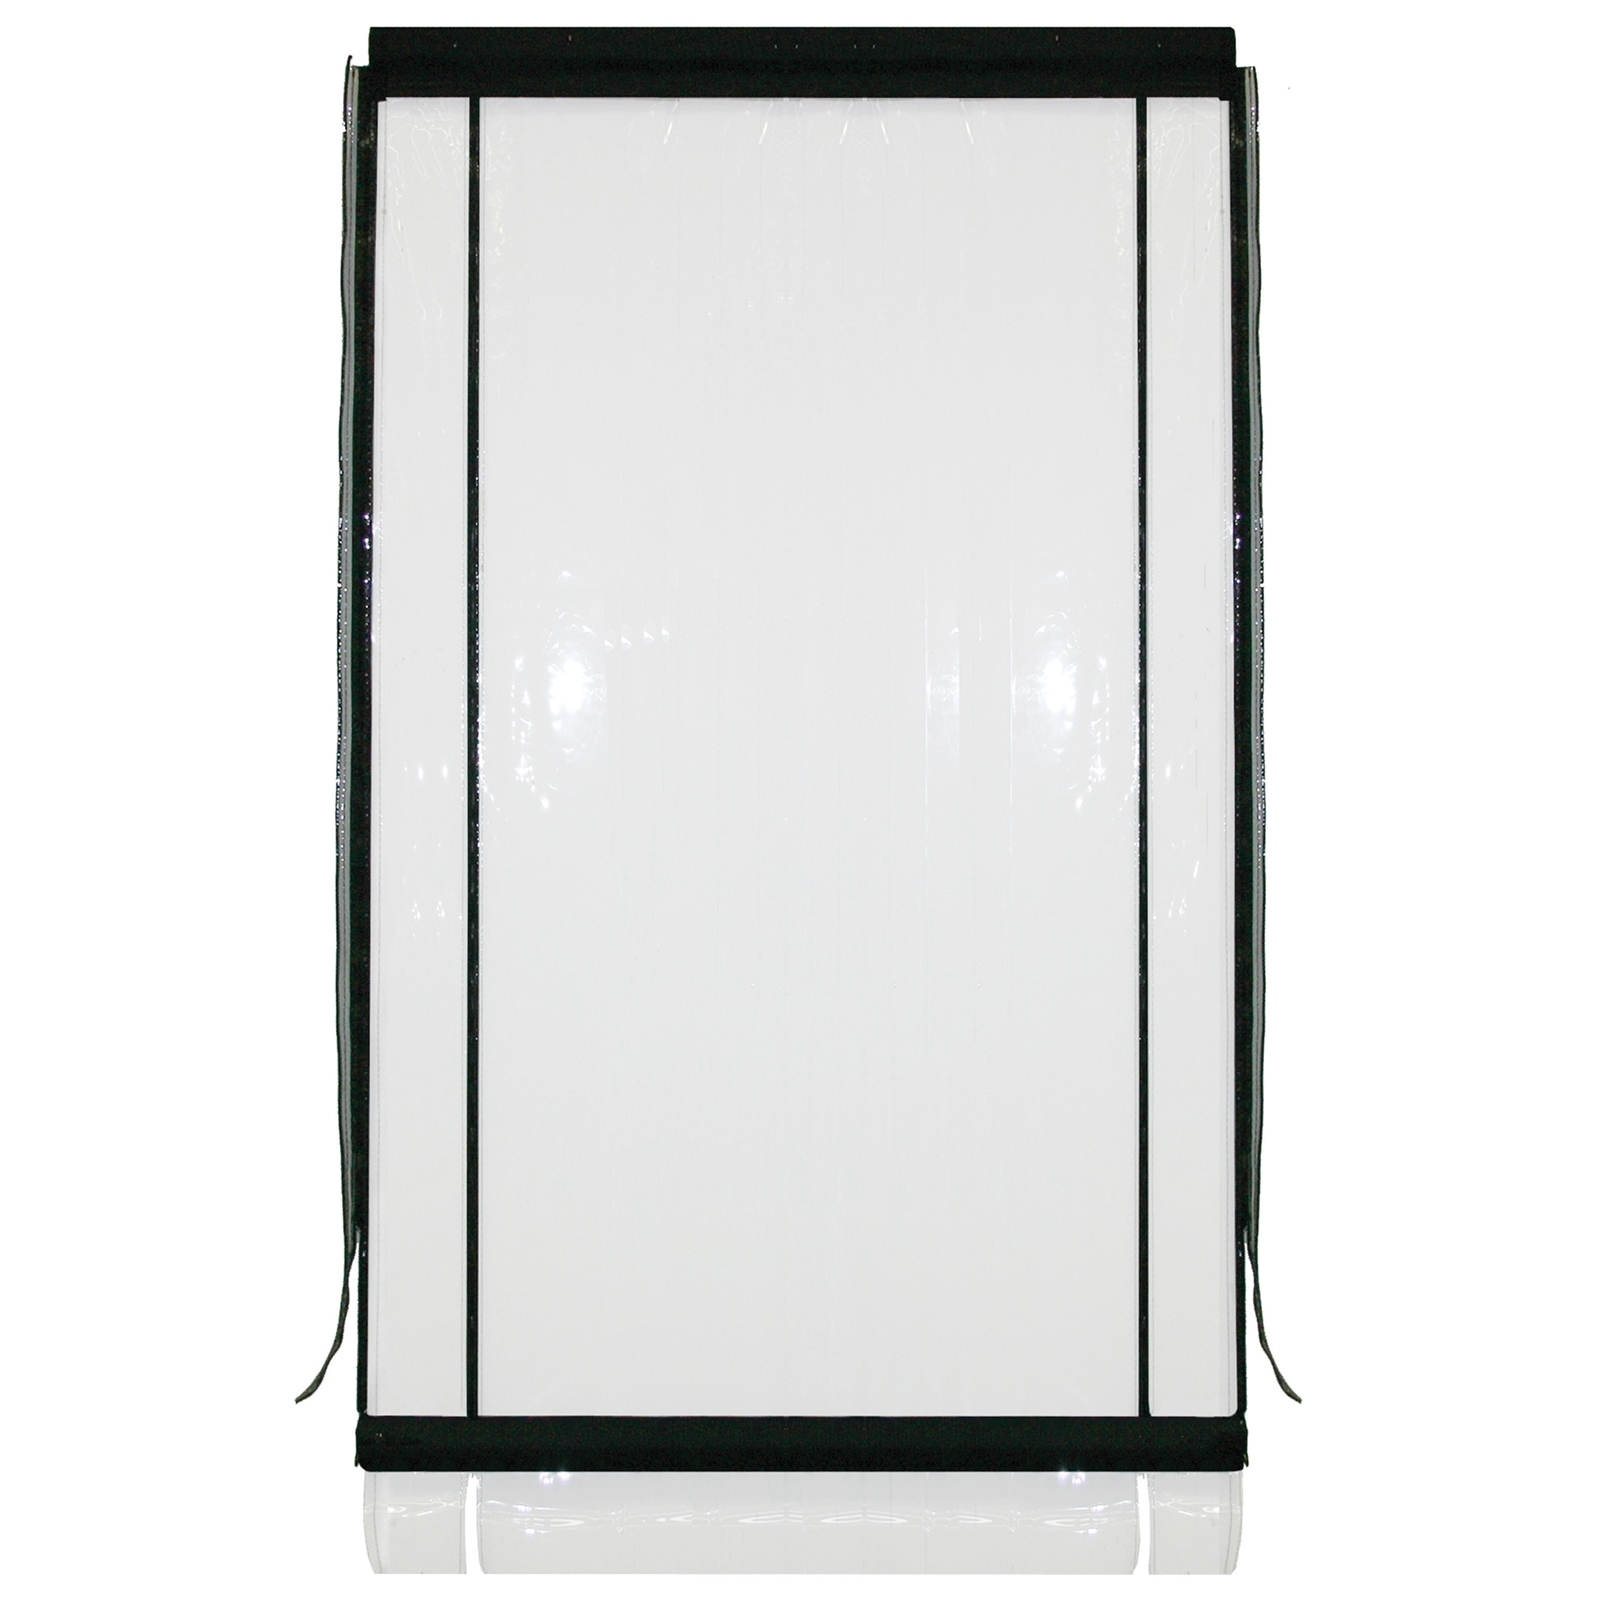 Bistro Blinds 0.75mm PVC Outdoor Blind - Clear / Black 2100mm x 2400mm